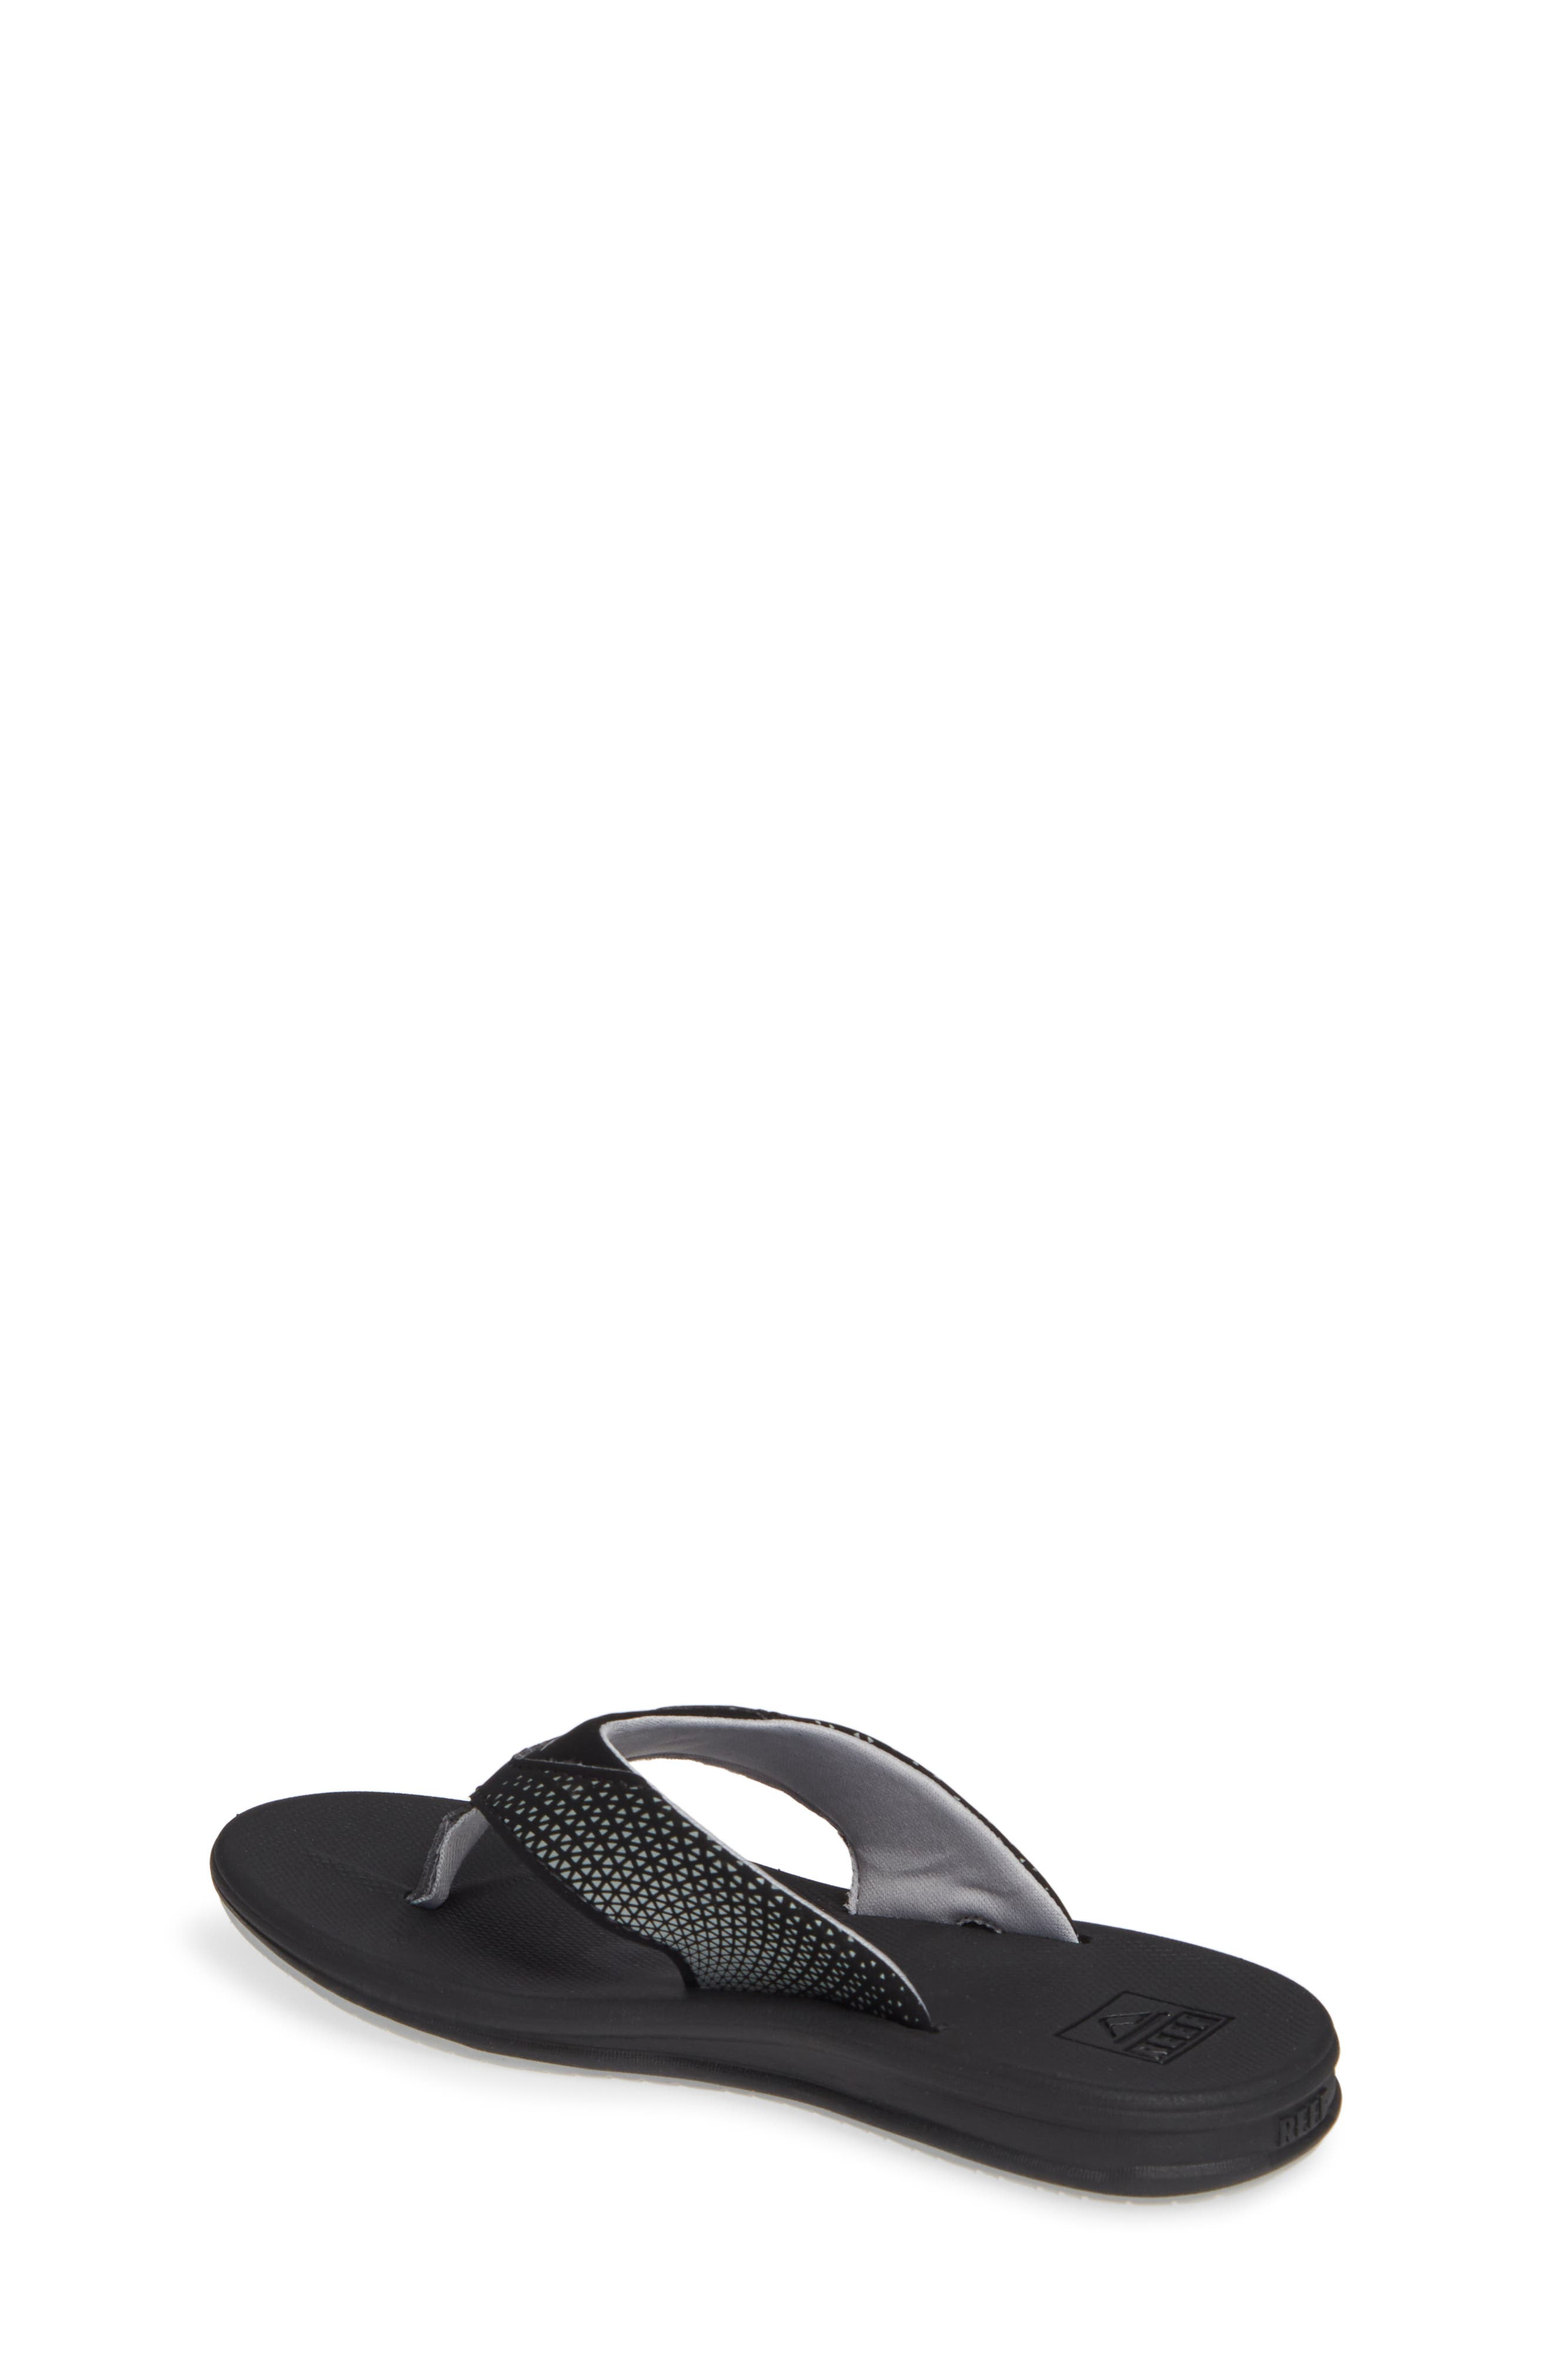 Grom Rover Water Friendly Sandal,                             Alternate thumbnail 2, color,                             BLACK